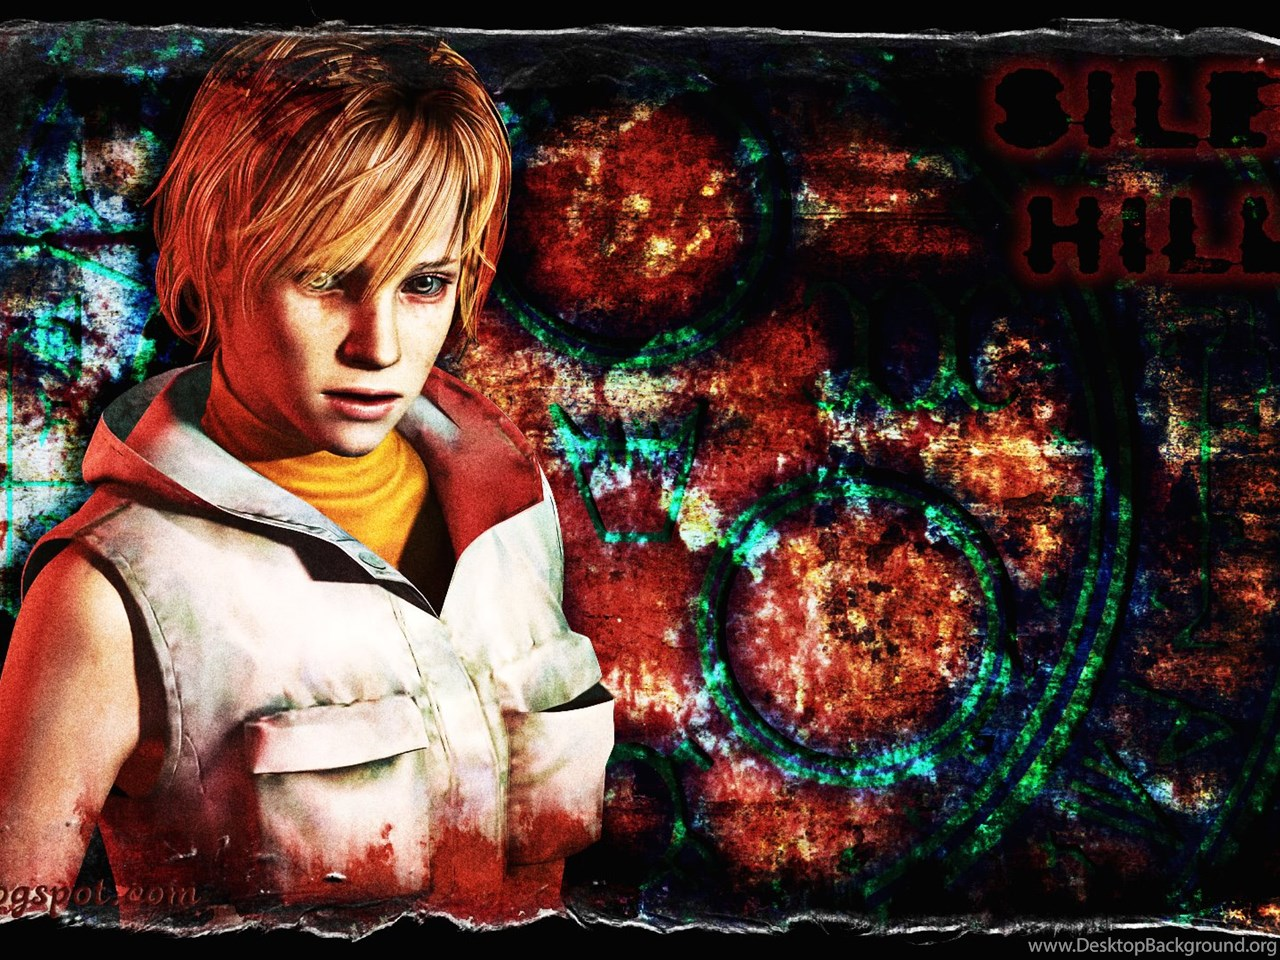 Games Movies Music Anime My Silent Hill 3 Hd Wallpapers 2 Desktop